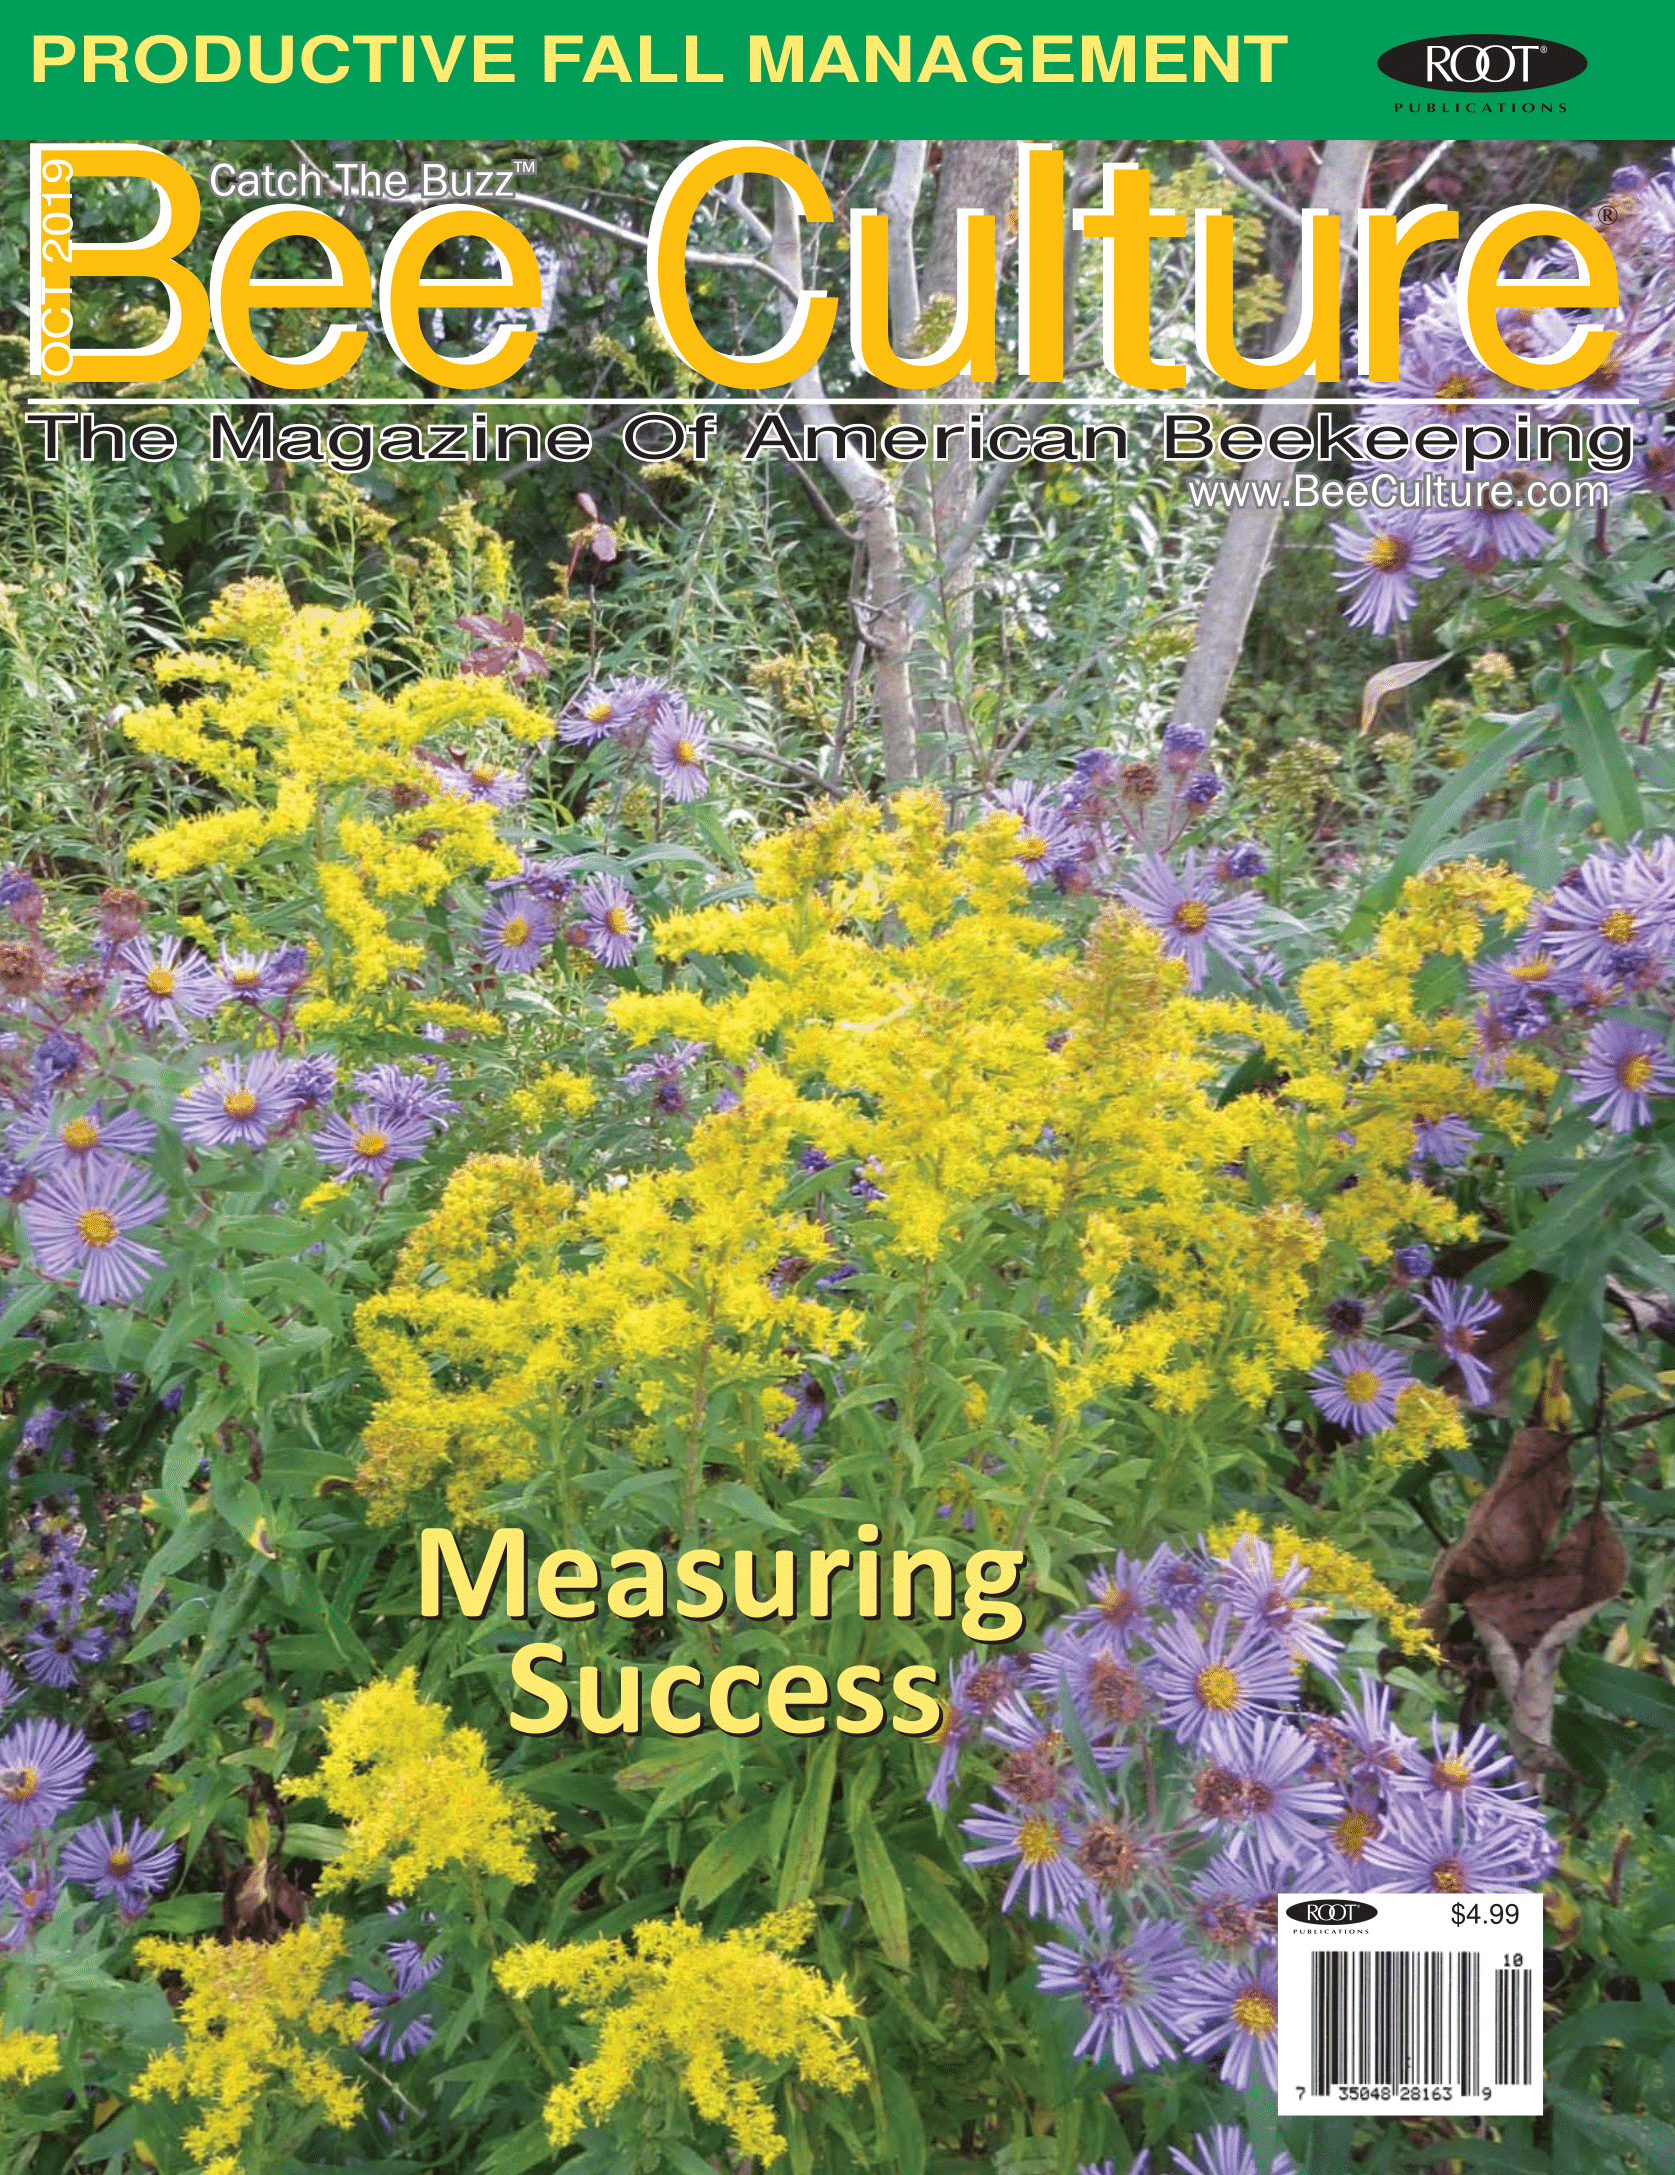 OCTOBER 2019 Cover